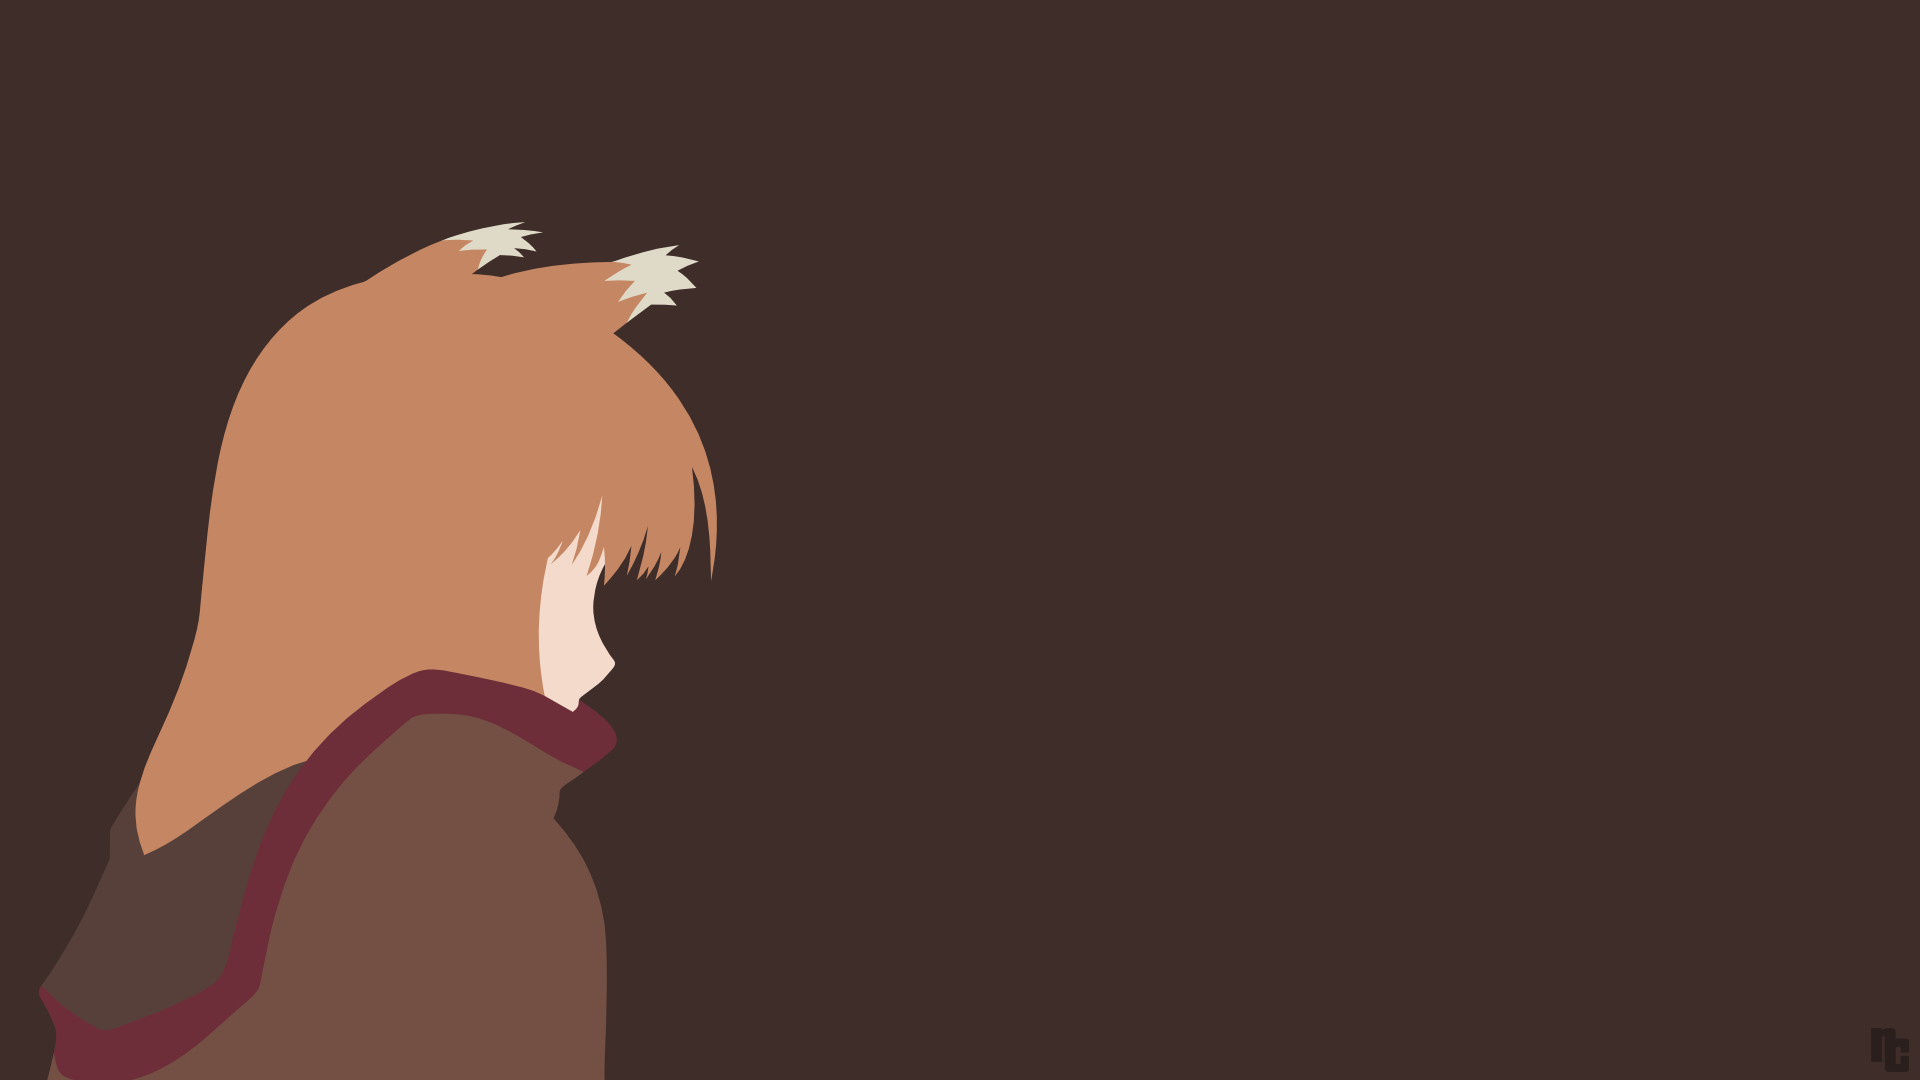 Spice And Wolf Holo Minimalist Wallpaper